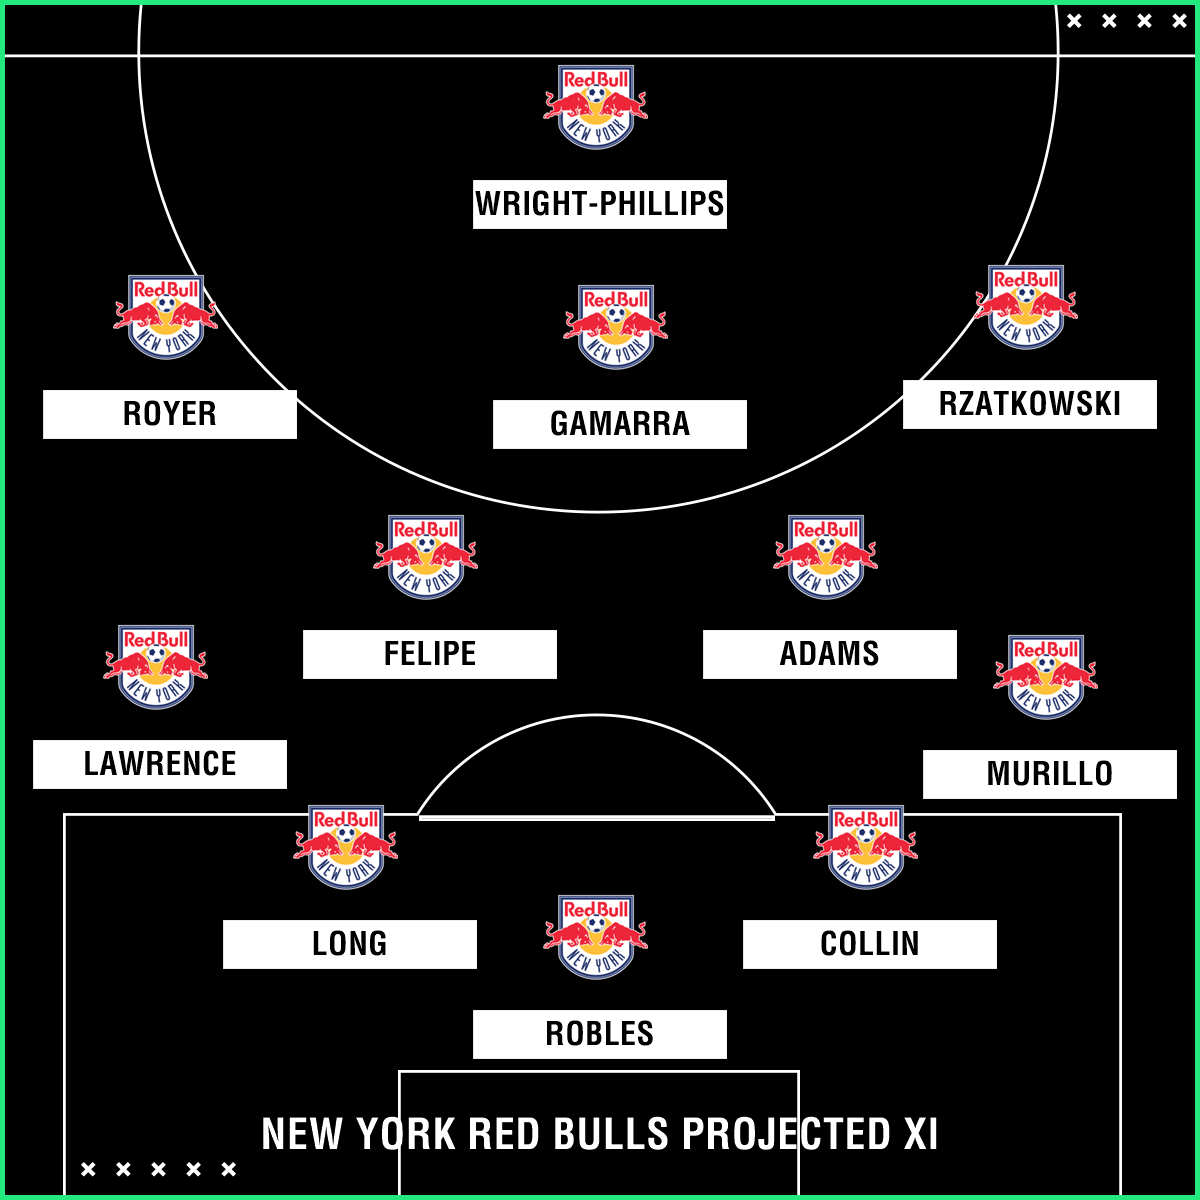 new york red bulls 2018 season preview: roster, projected lineup